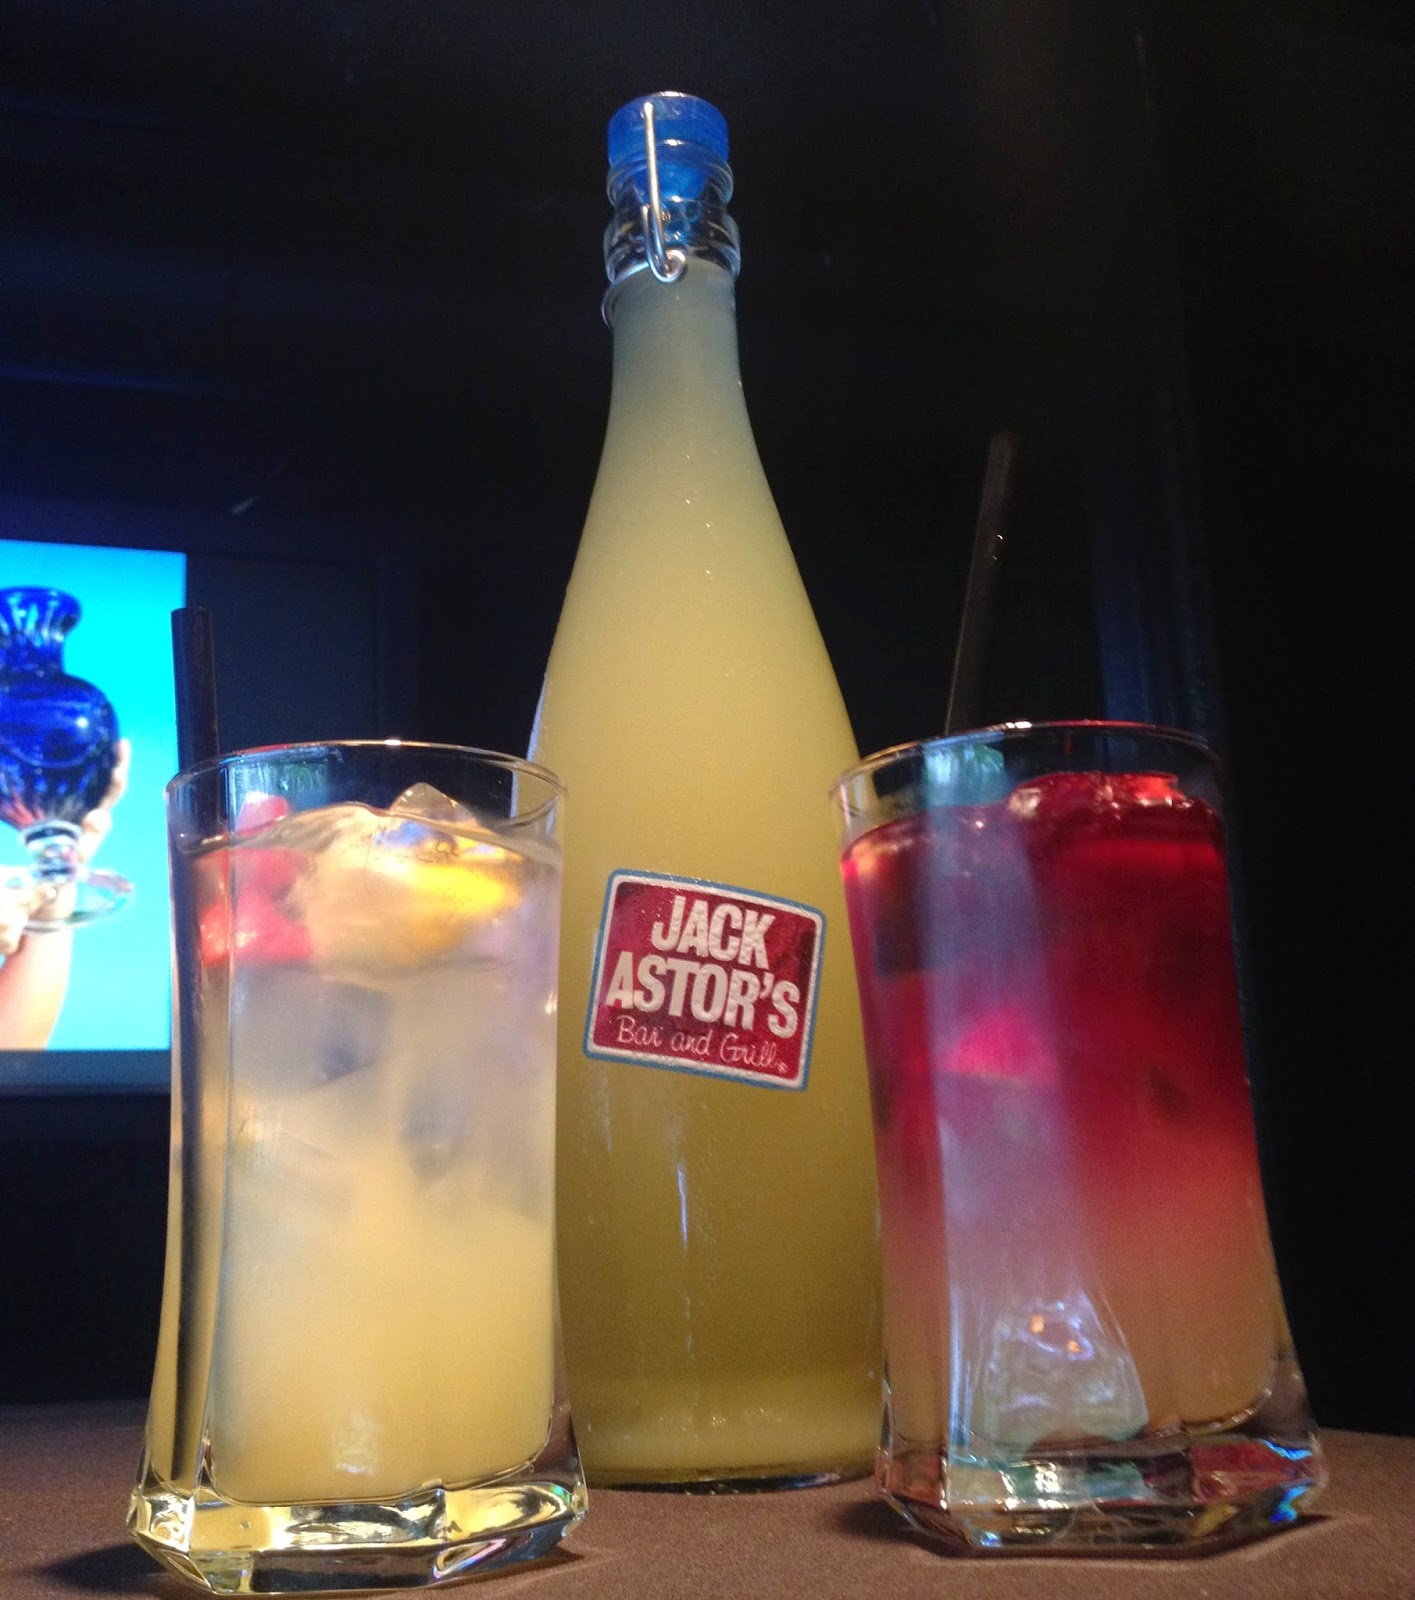 Jack Astor's Sangria at Zack & Jack's $52,000 Potato Salad Party